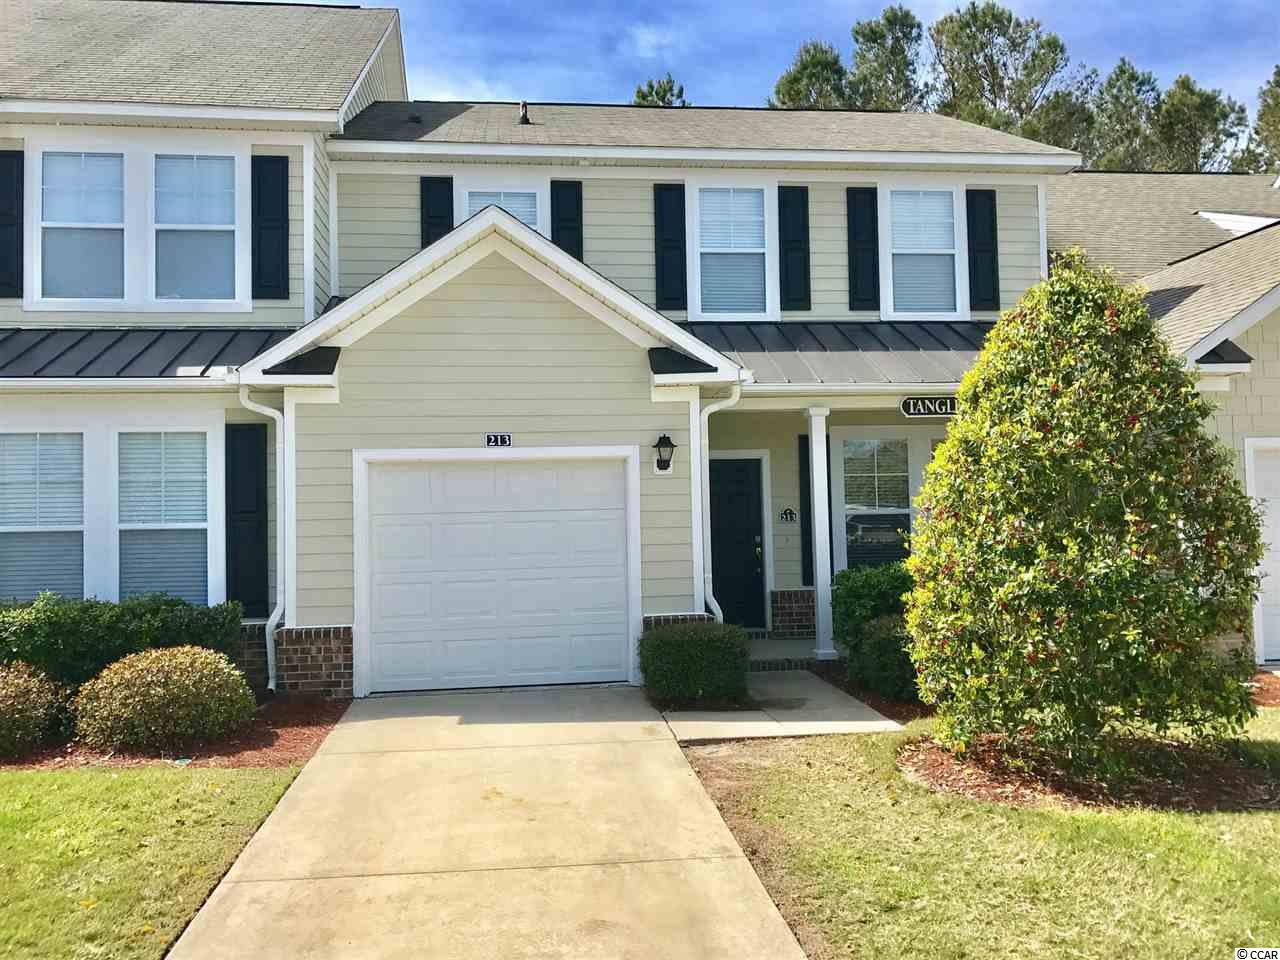 Townhouse MLS:1723156 TANGLEWOOD AT BAREFOOT RESORT  6095 Catalina Drive North Myrtle Beach SC